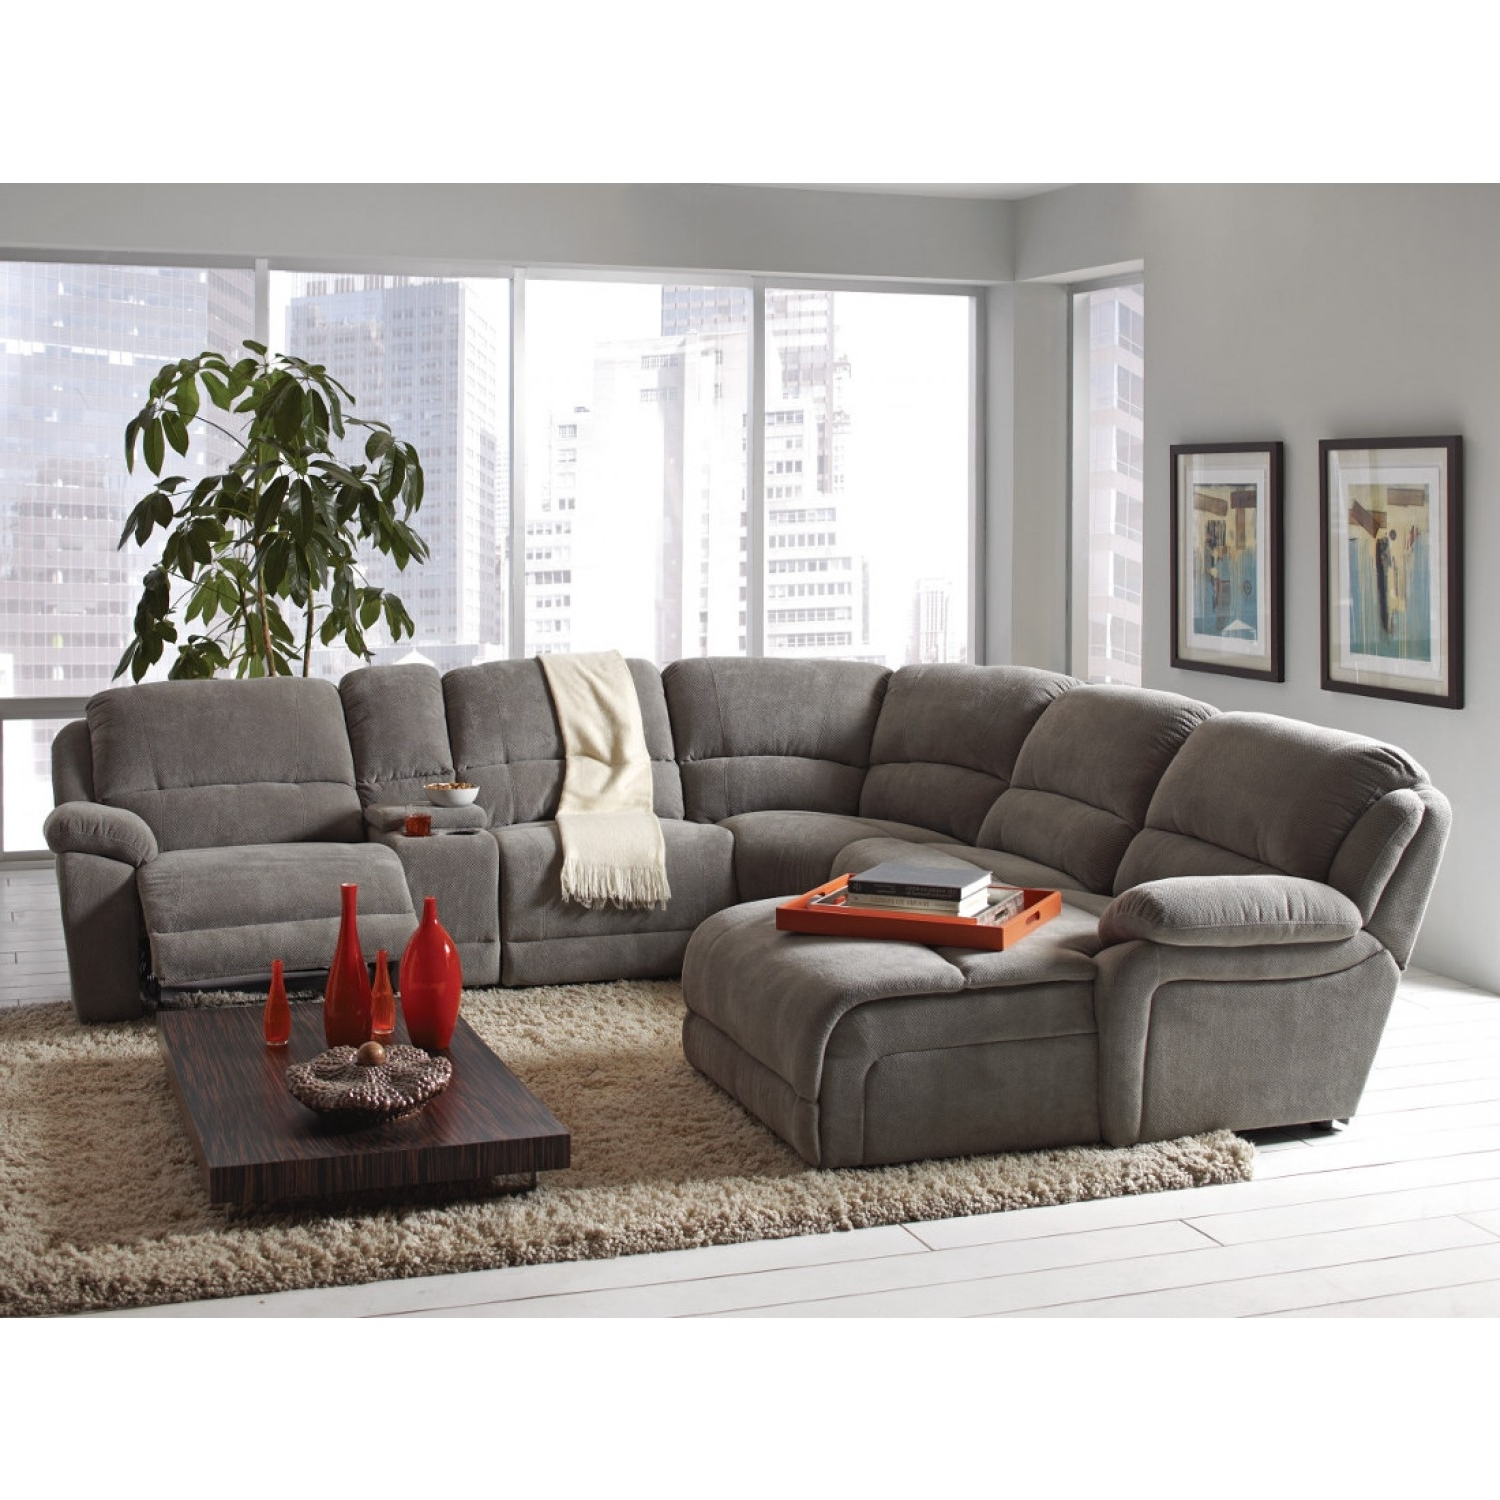 Most Recently Released Sectional Sofas That Come In Pieces Intended For Coaster Mackenzie Silver 6 Piece Reclining Sectional Sofa With (View 10 of 20)